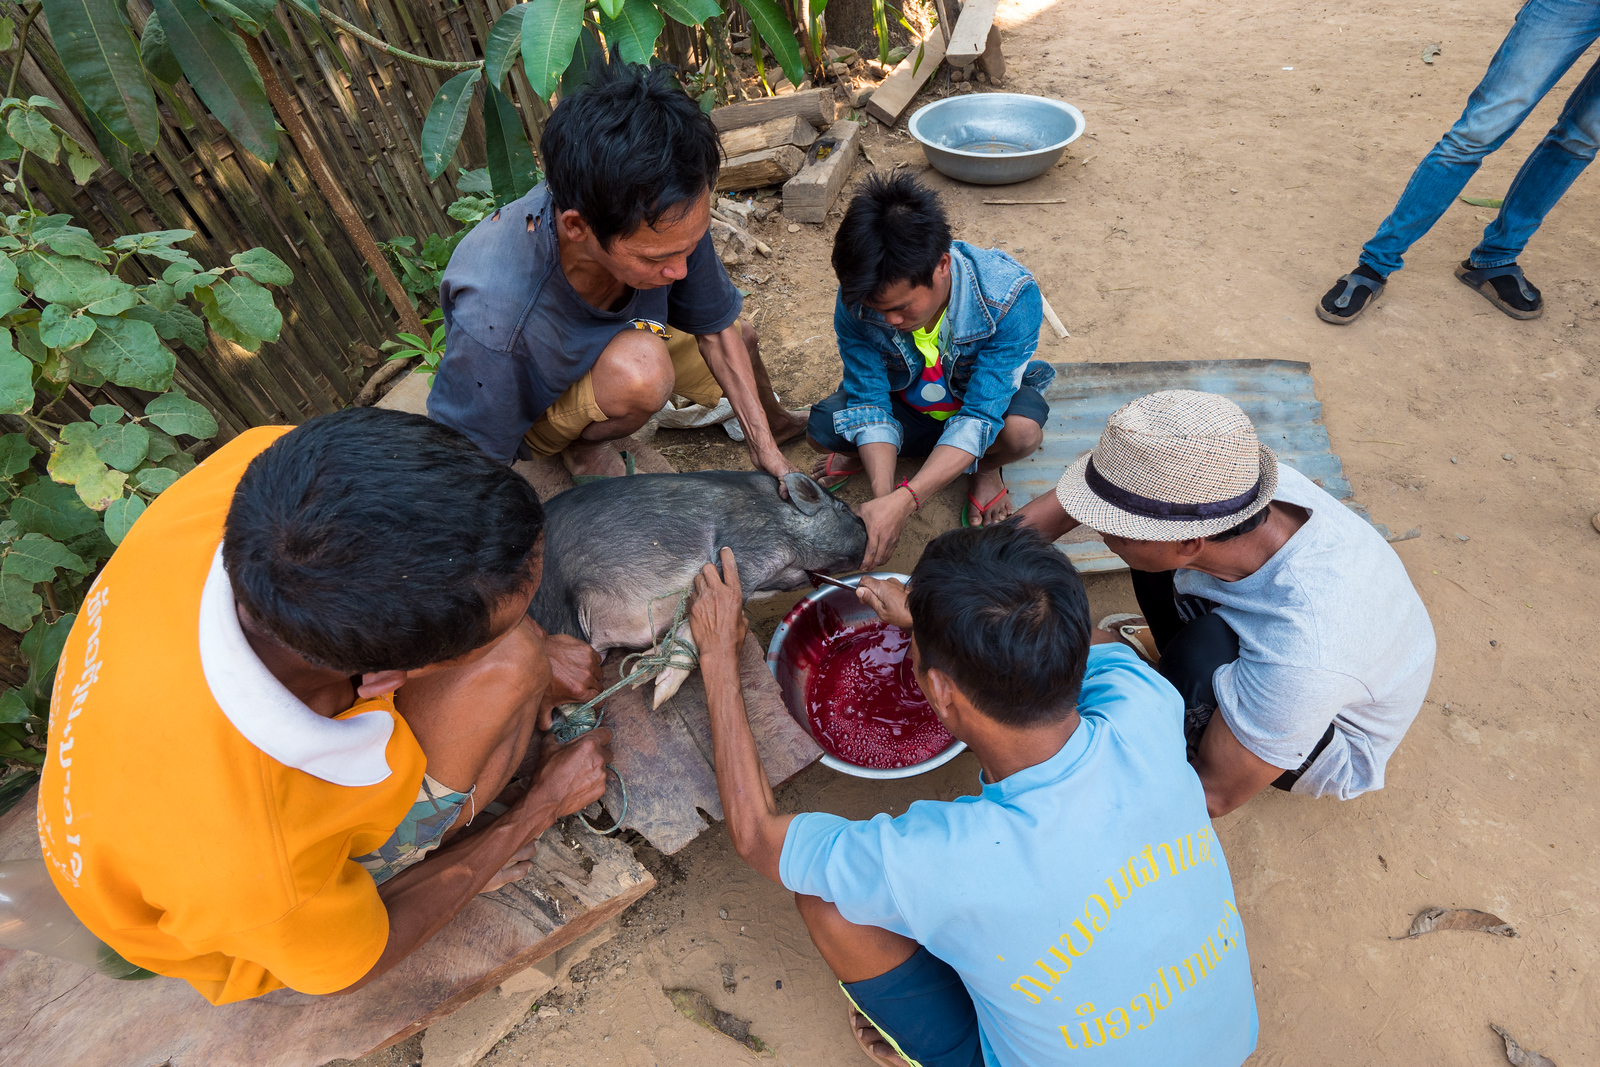 Khmu people butcher a pig